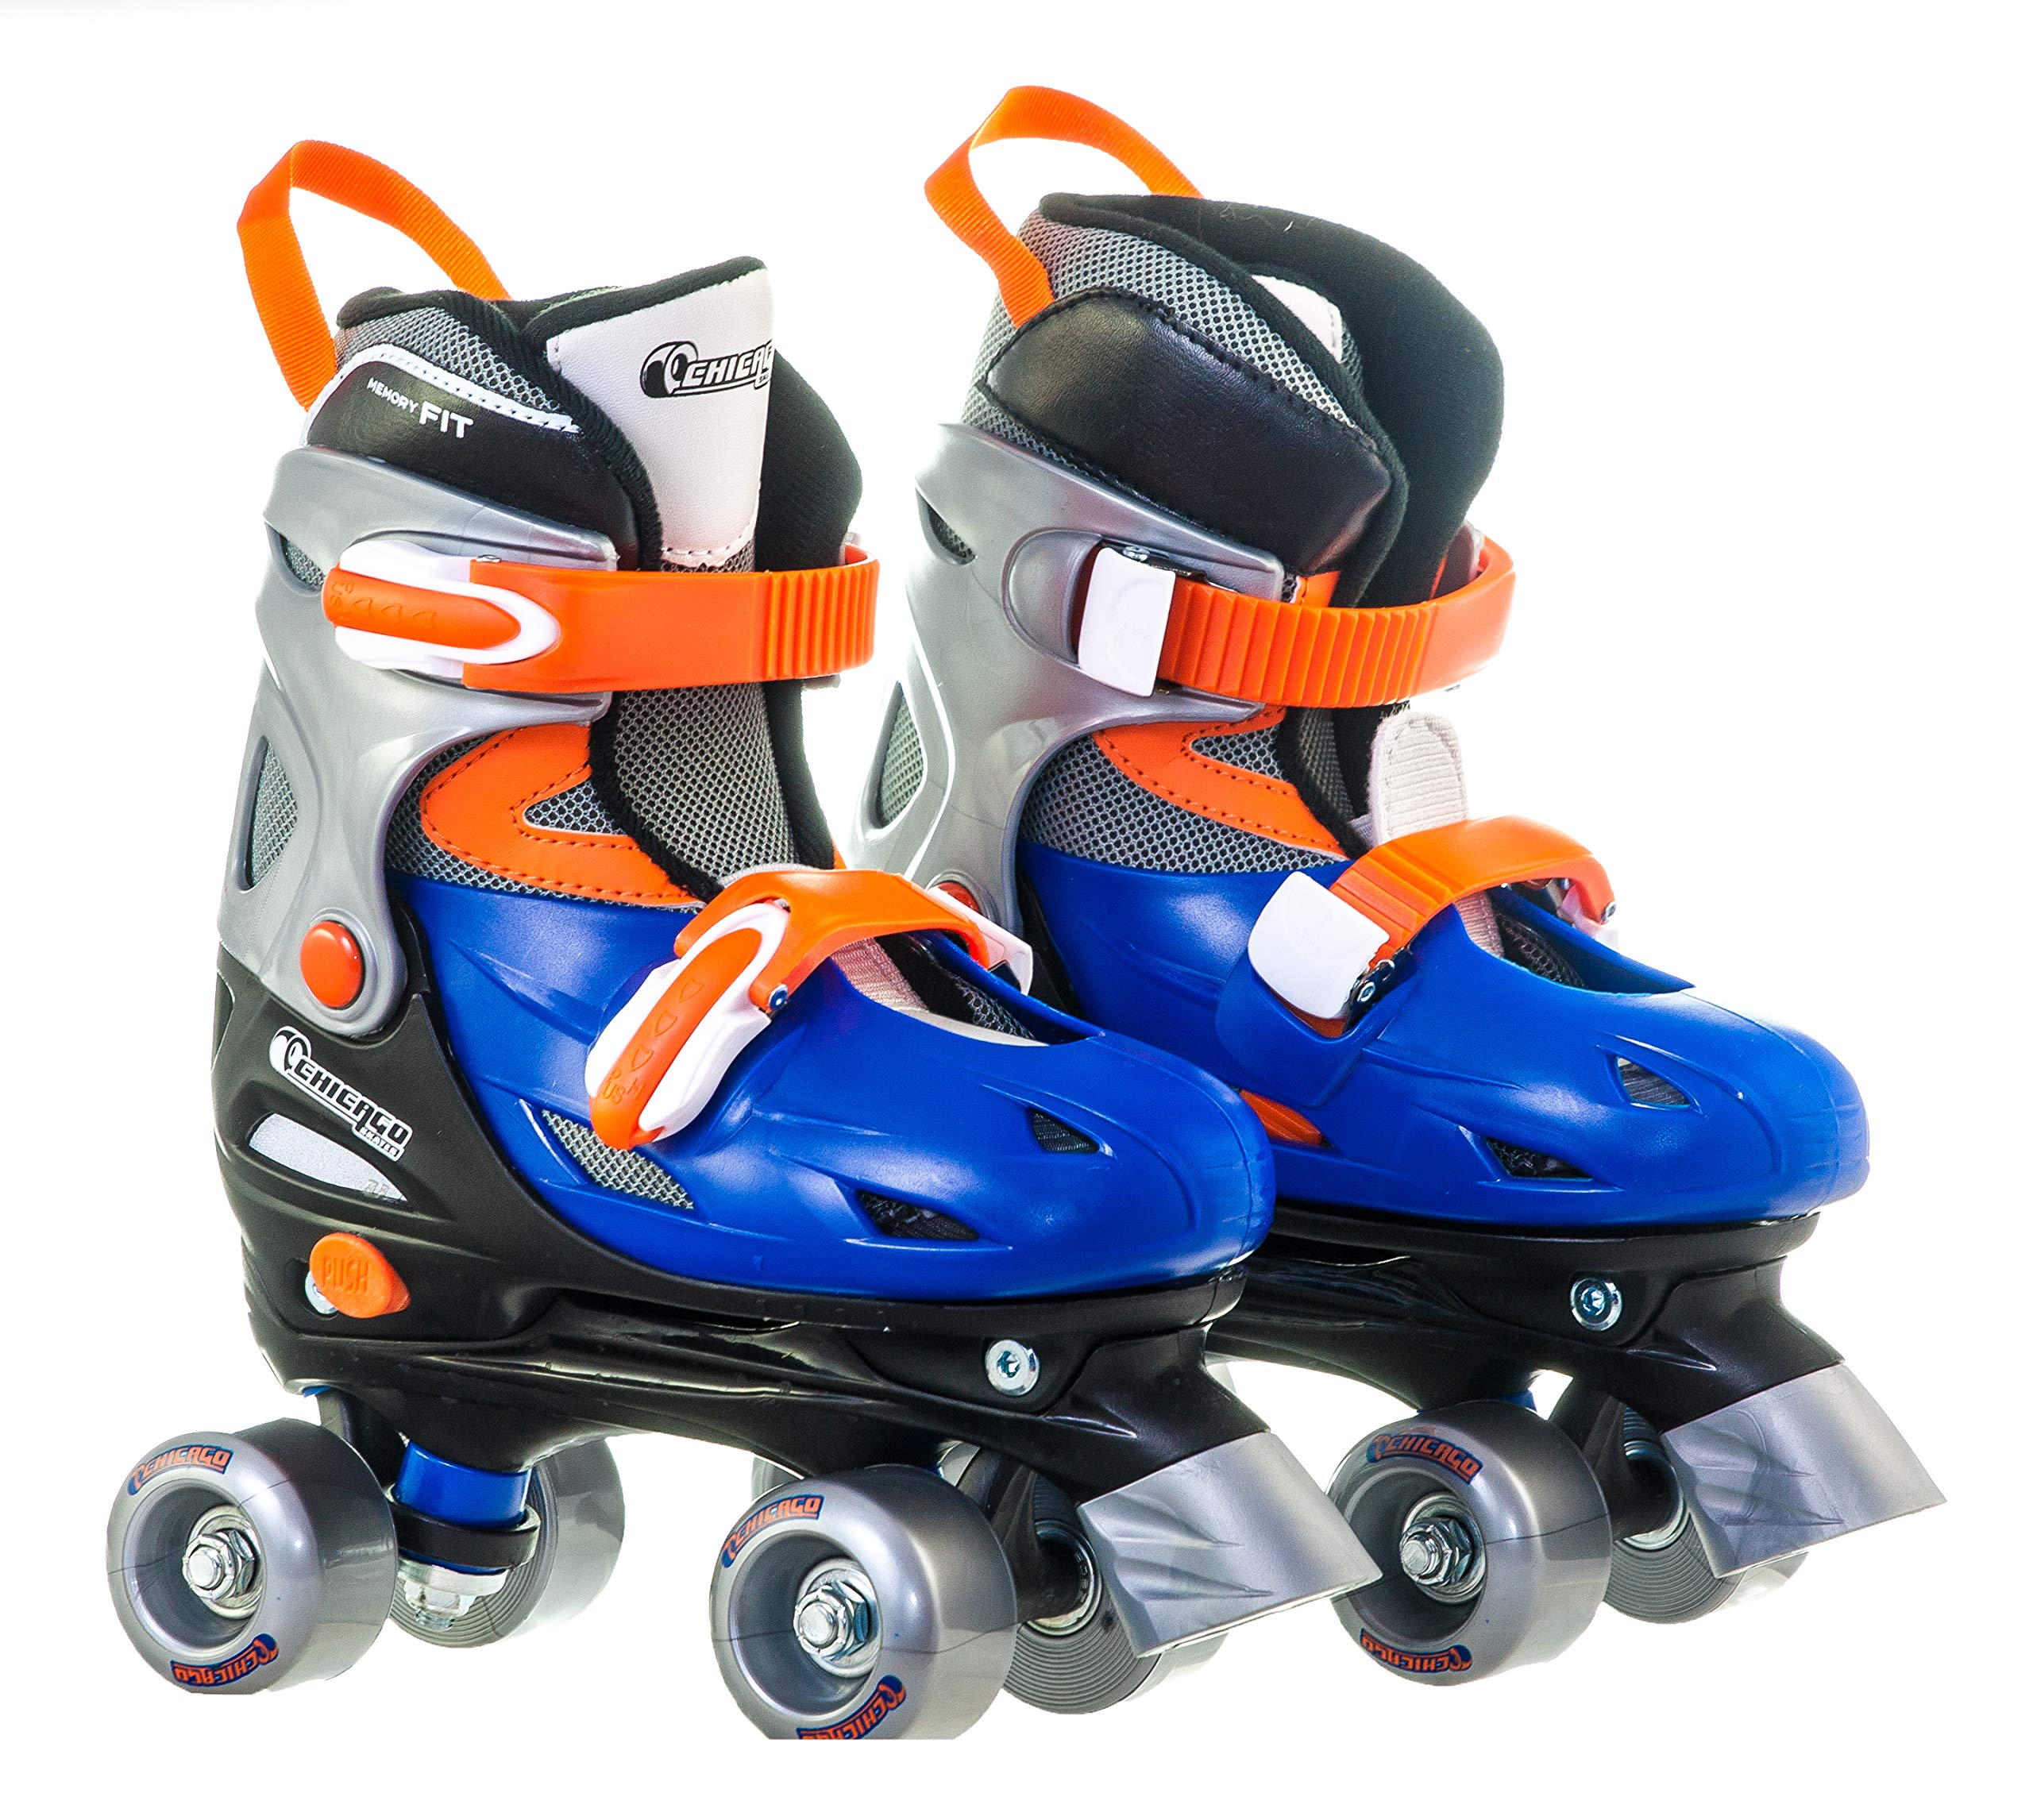 Chicago Boy's Adjustable Quad Roller Skate, Blue/Silver, Small by Chicago Skates